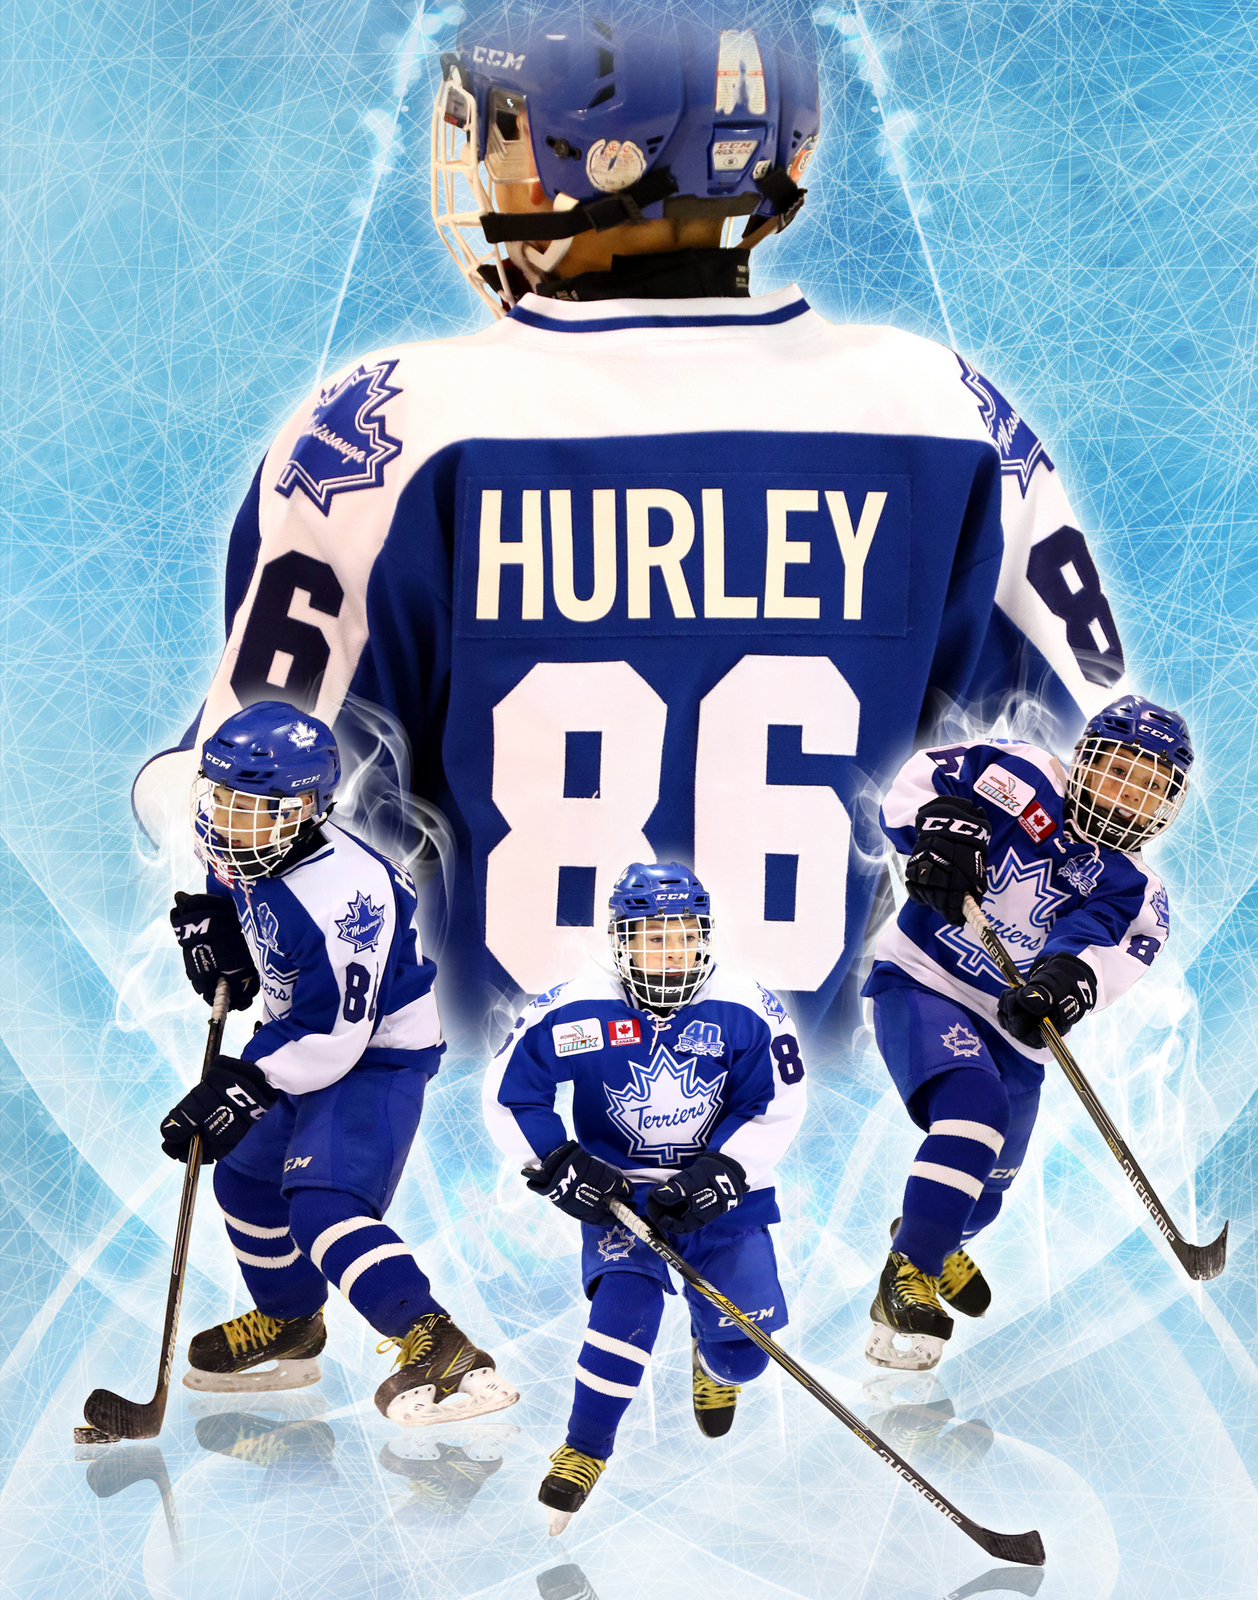 SilverPeak Studios Commemorative Poster Samples Action Sports Hockey Photography (5)